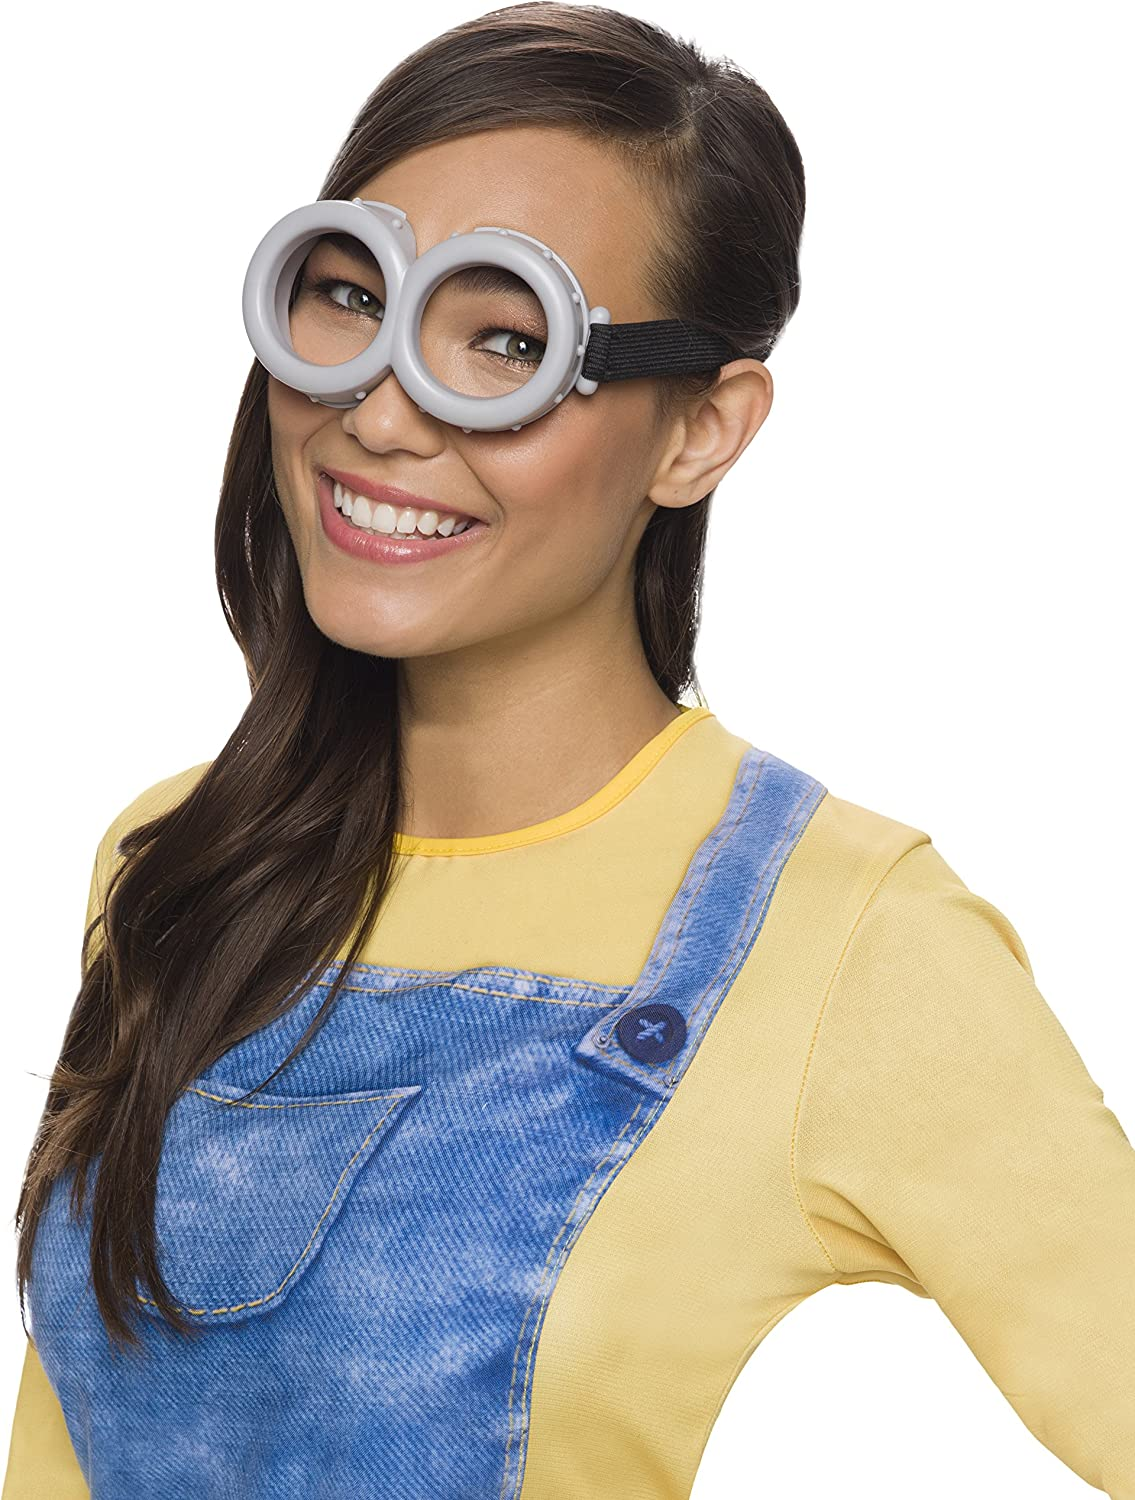 Minion Goggles Adult /& Kids Despicable Me Costume Glasses Halloween Fancy Dress